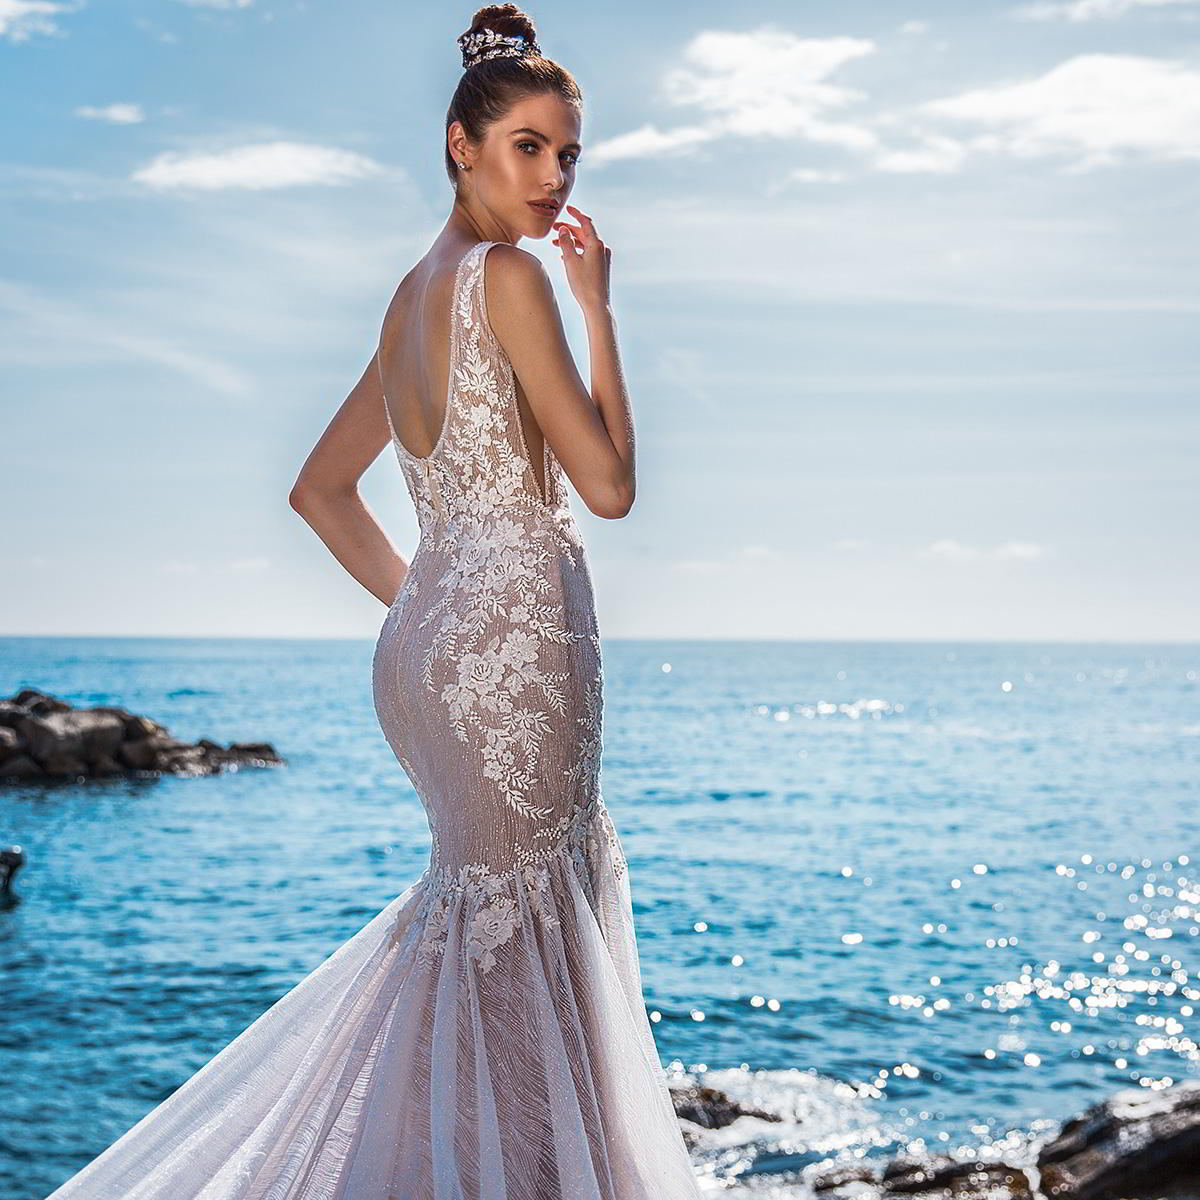 Luce Sposa 2019 Wedding Dresses